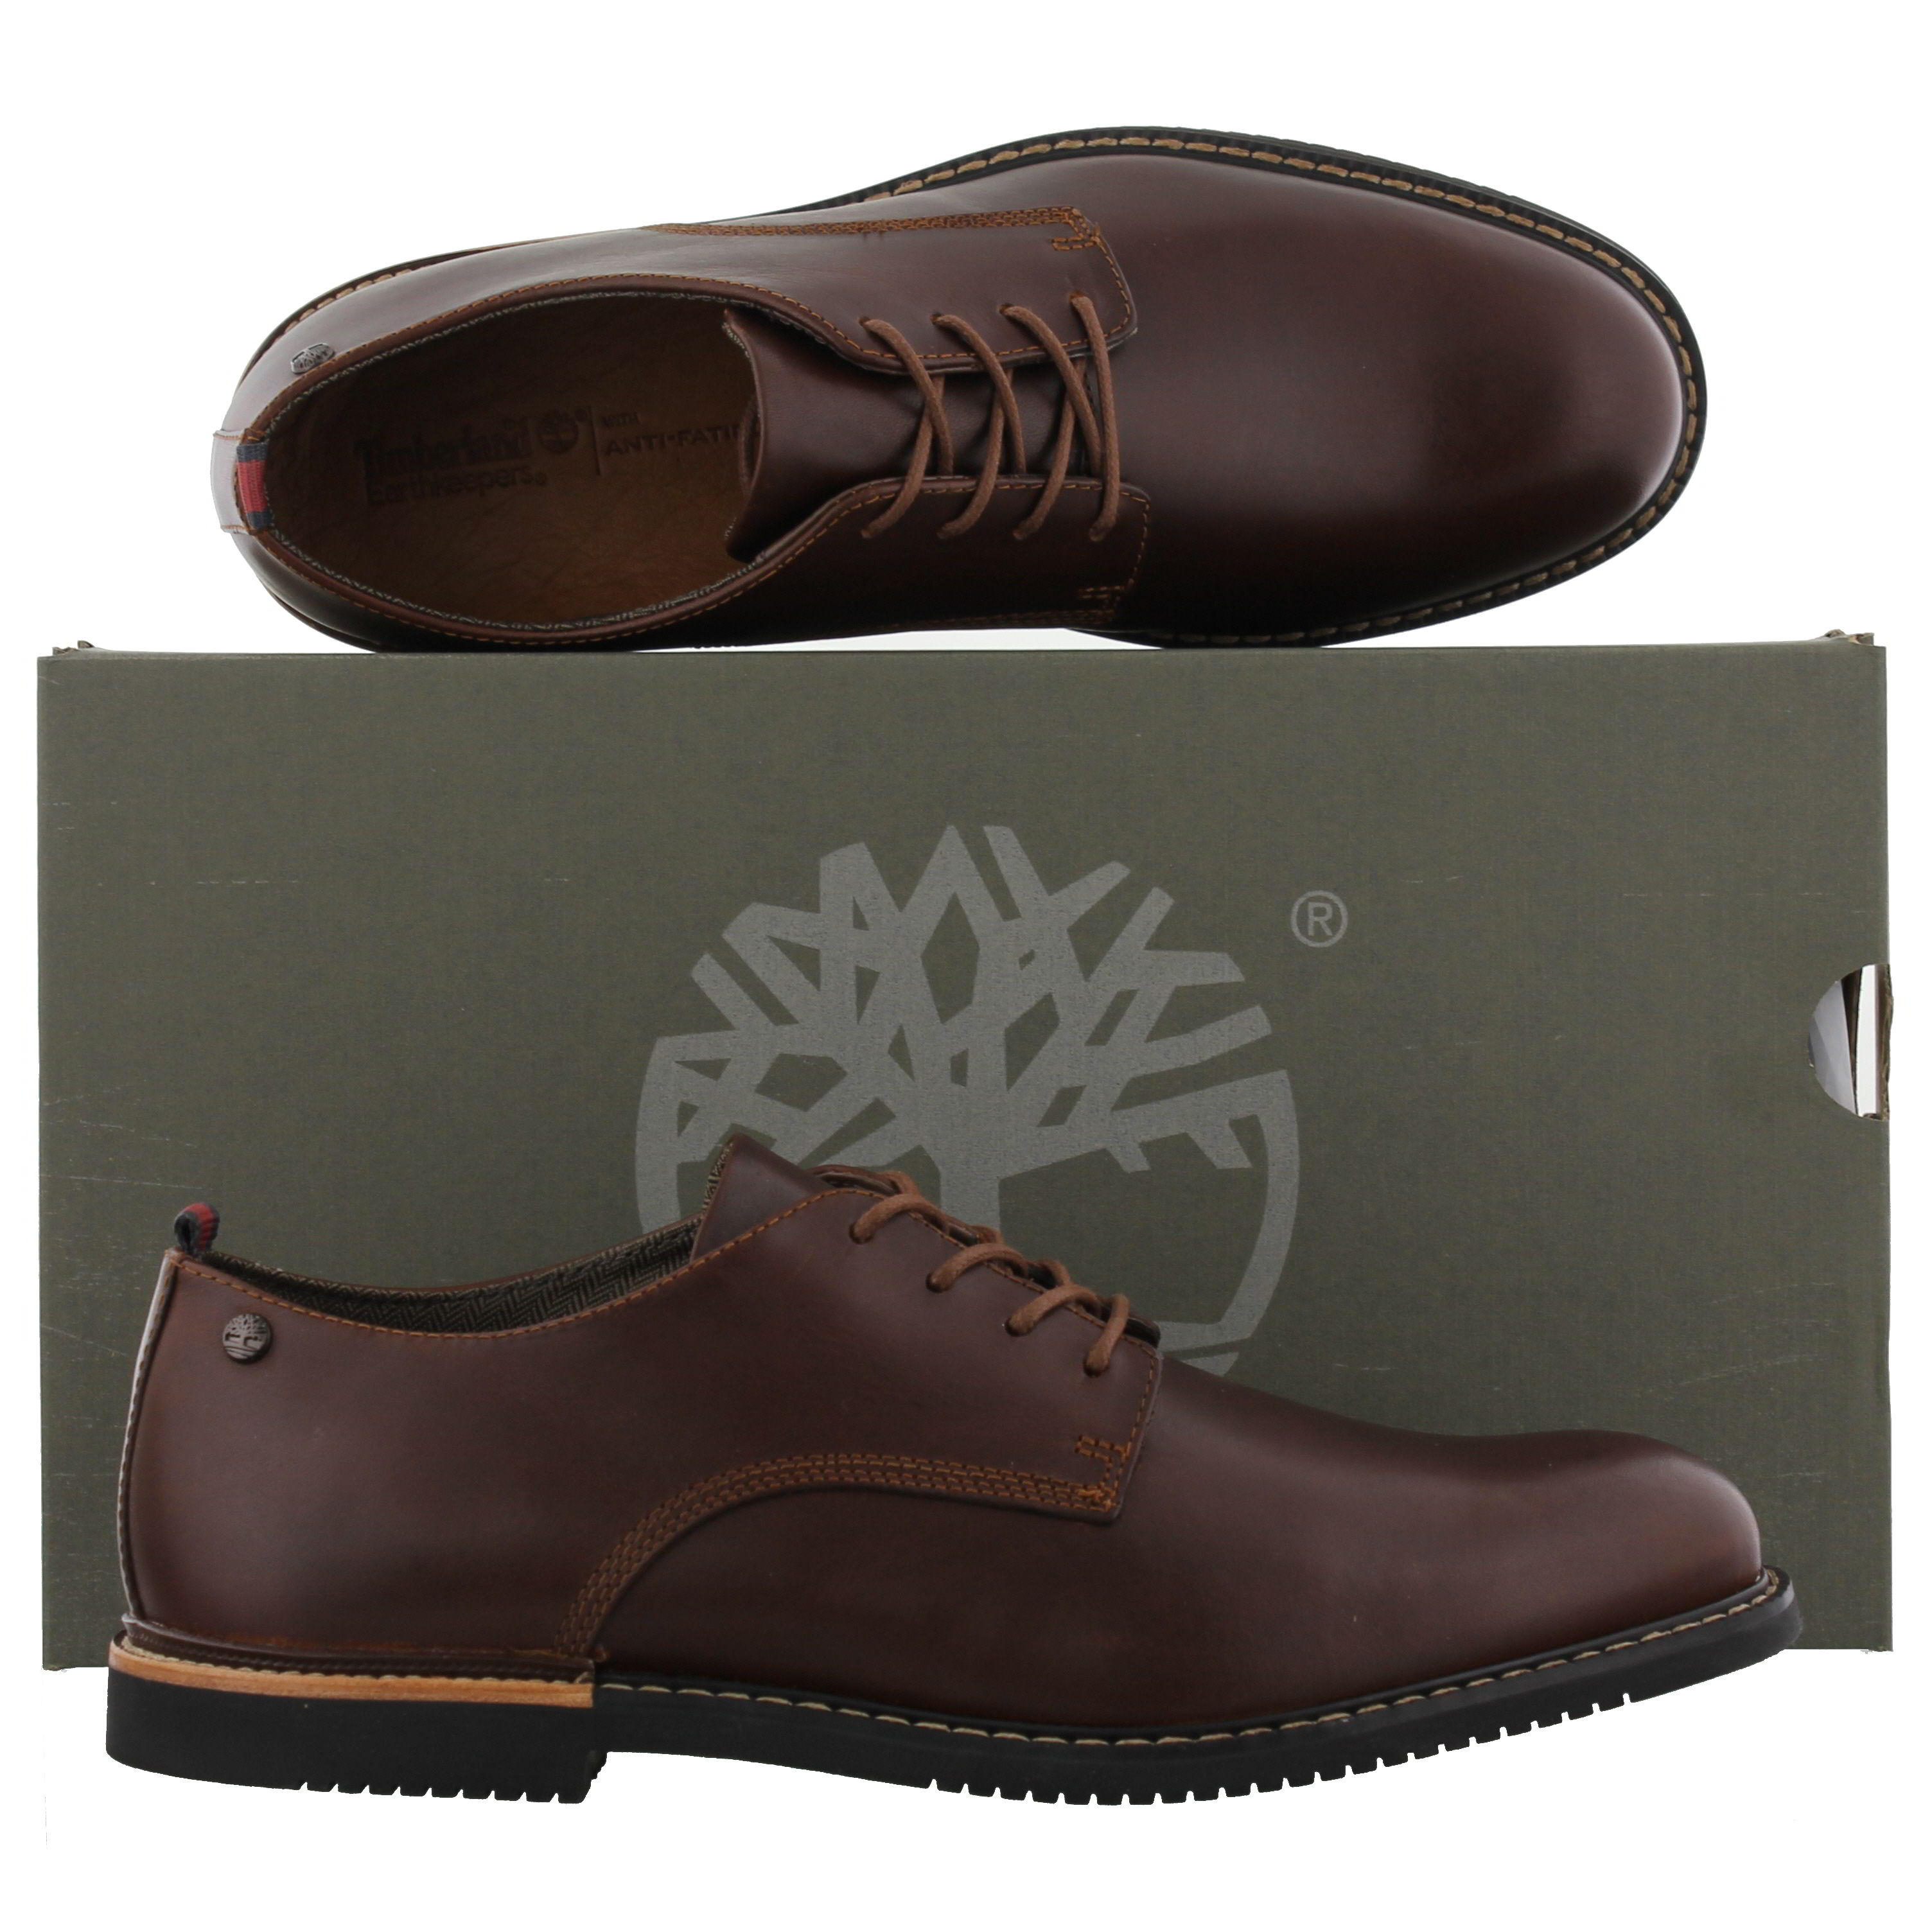 Brook Park Leather Oxford Shoes